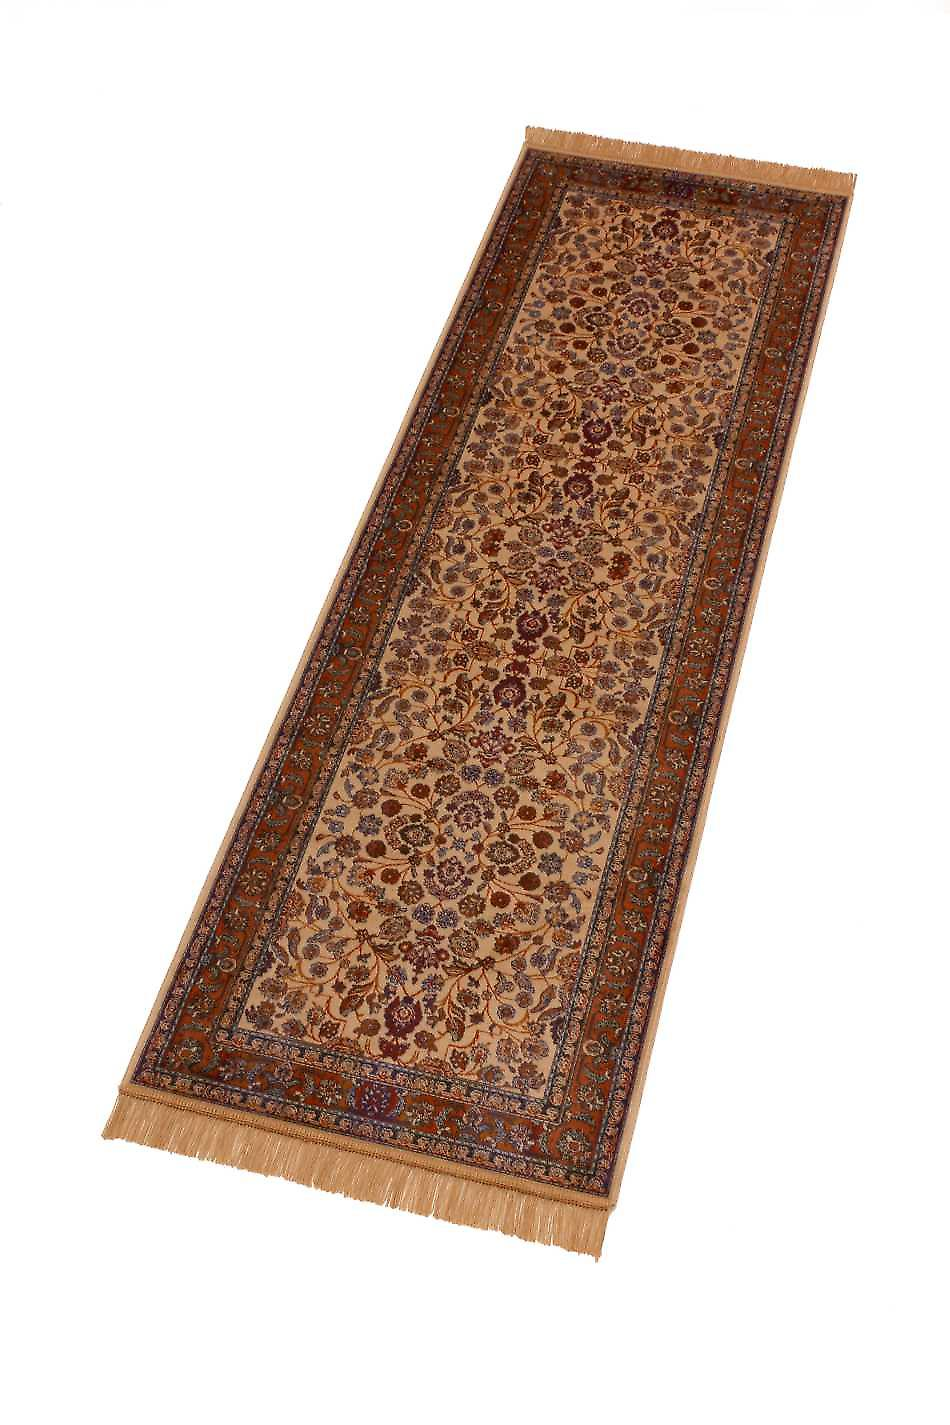 Afghan Ziegler Artsilk Faux Silk Effect Hall Runner Rugs 5663/4